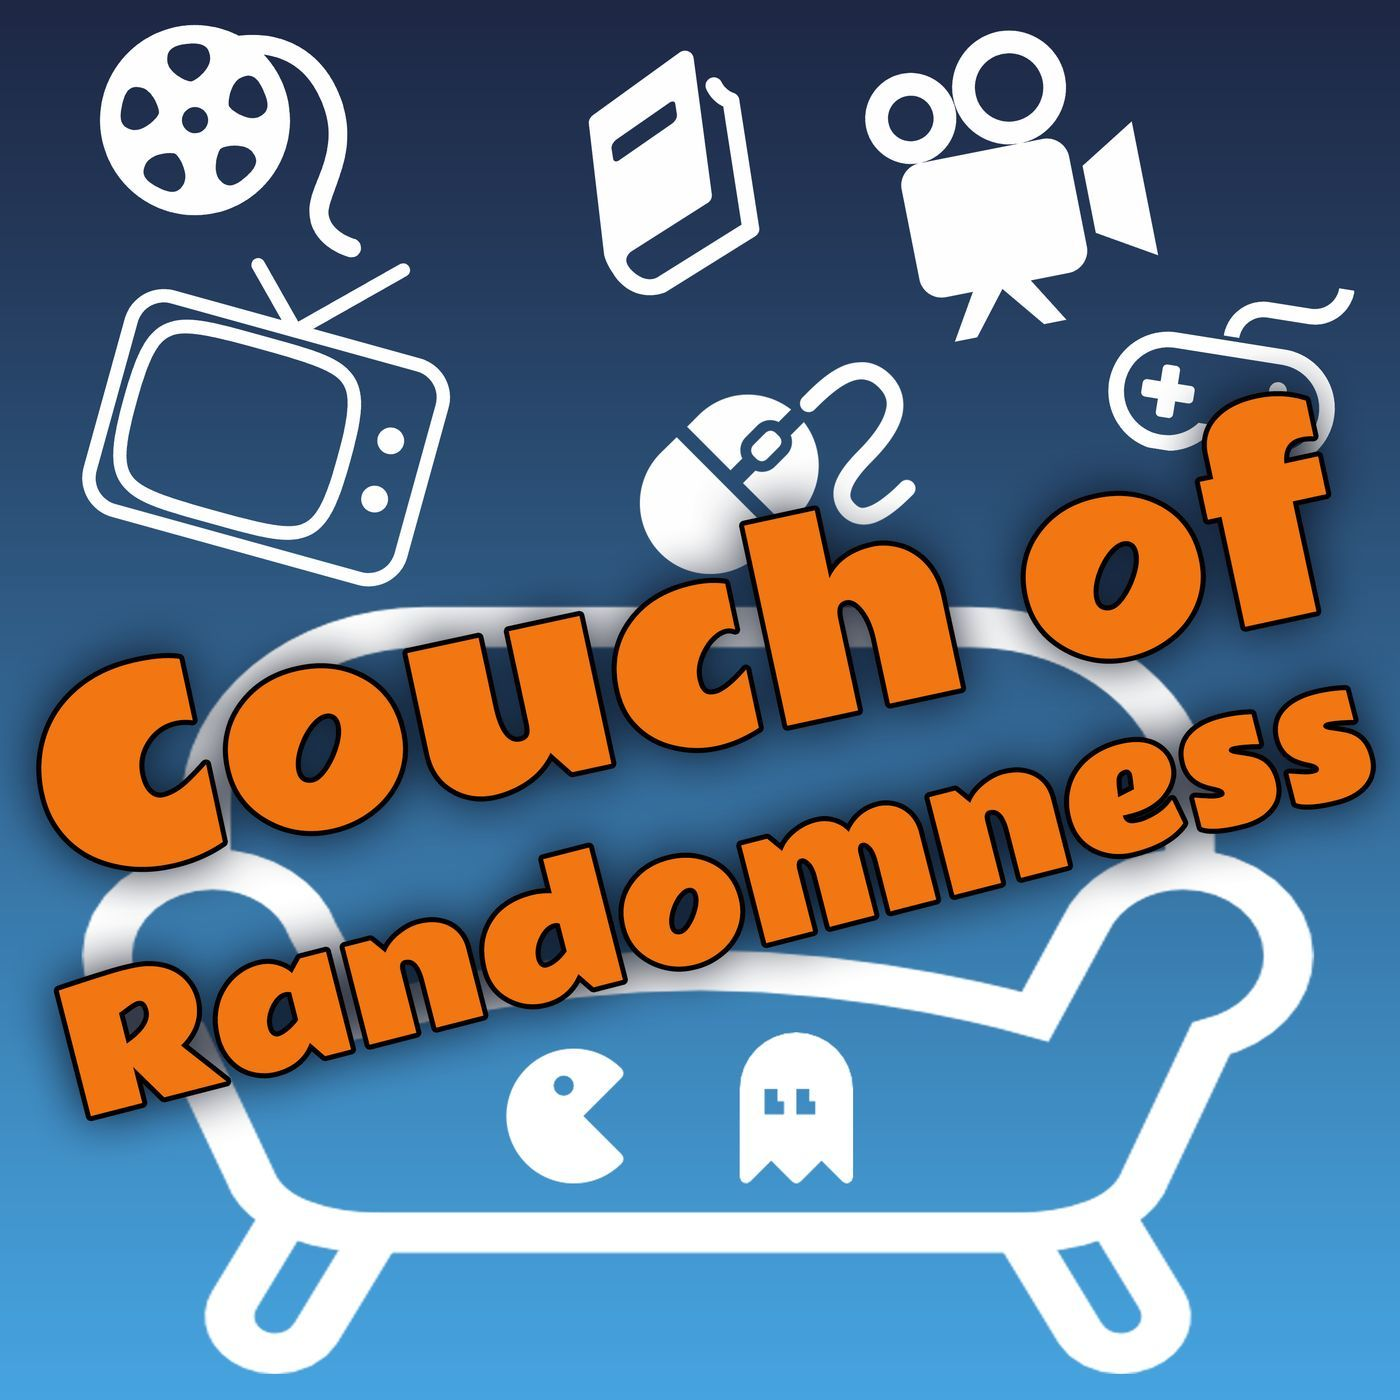 Couch Of Randomness